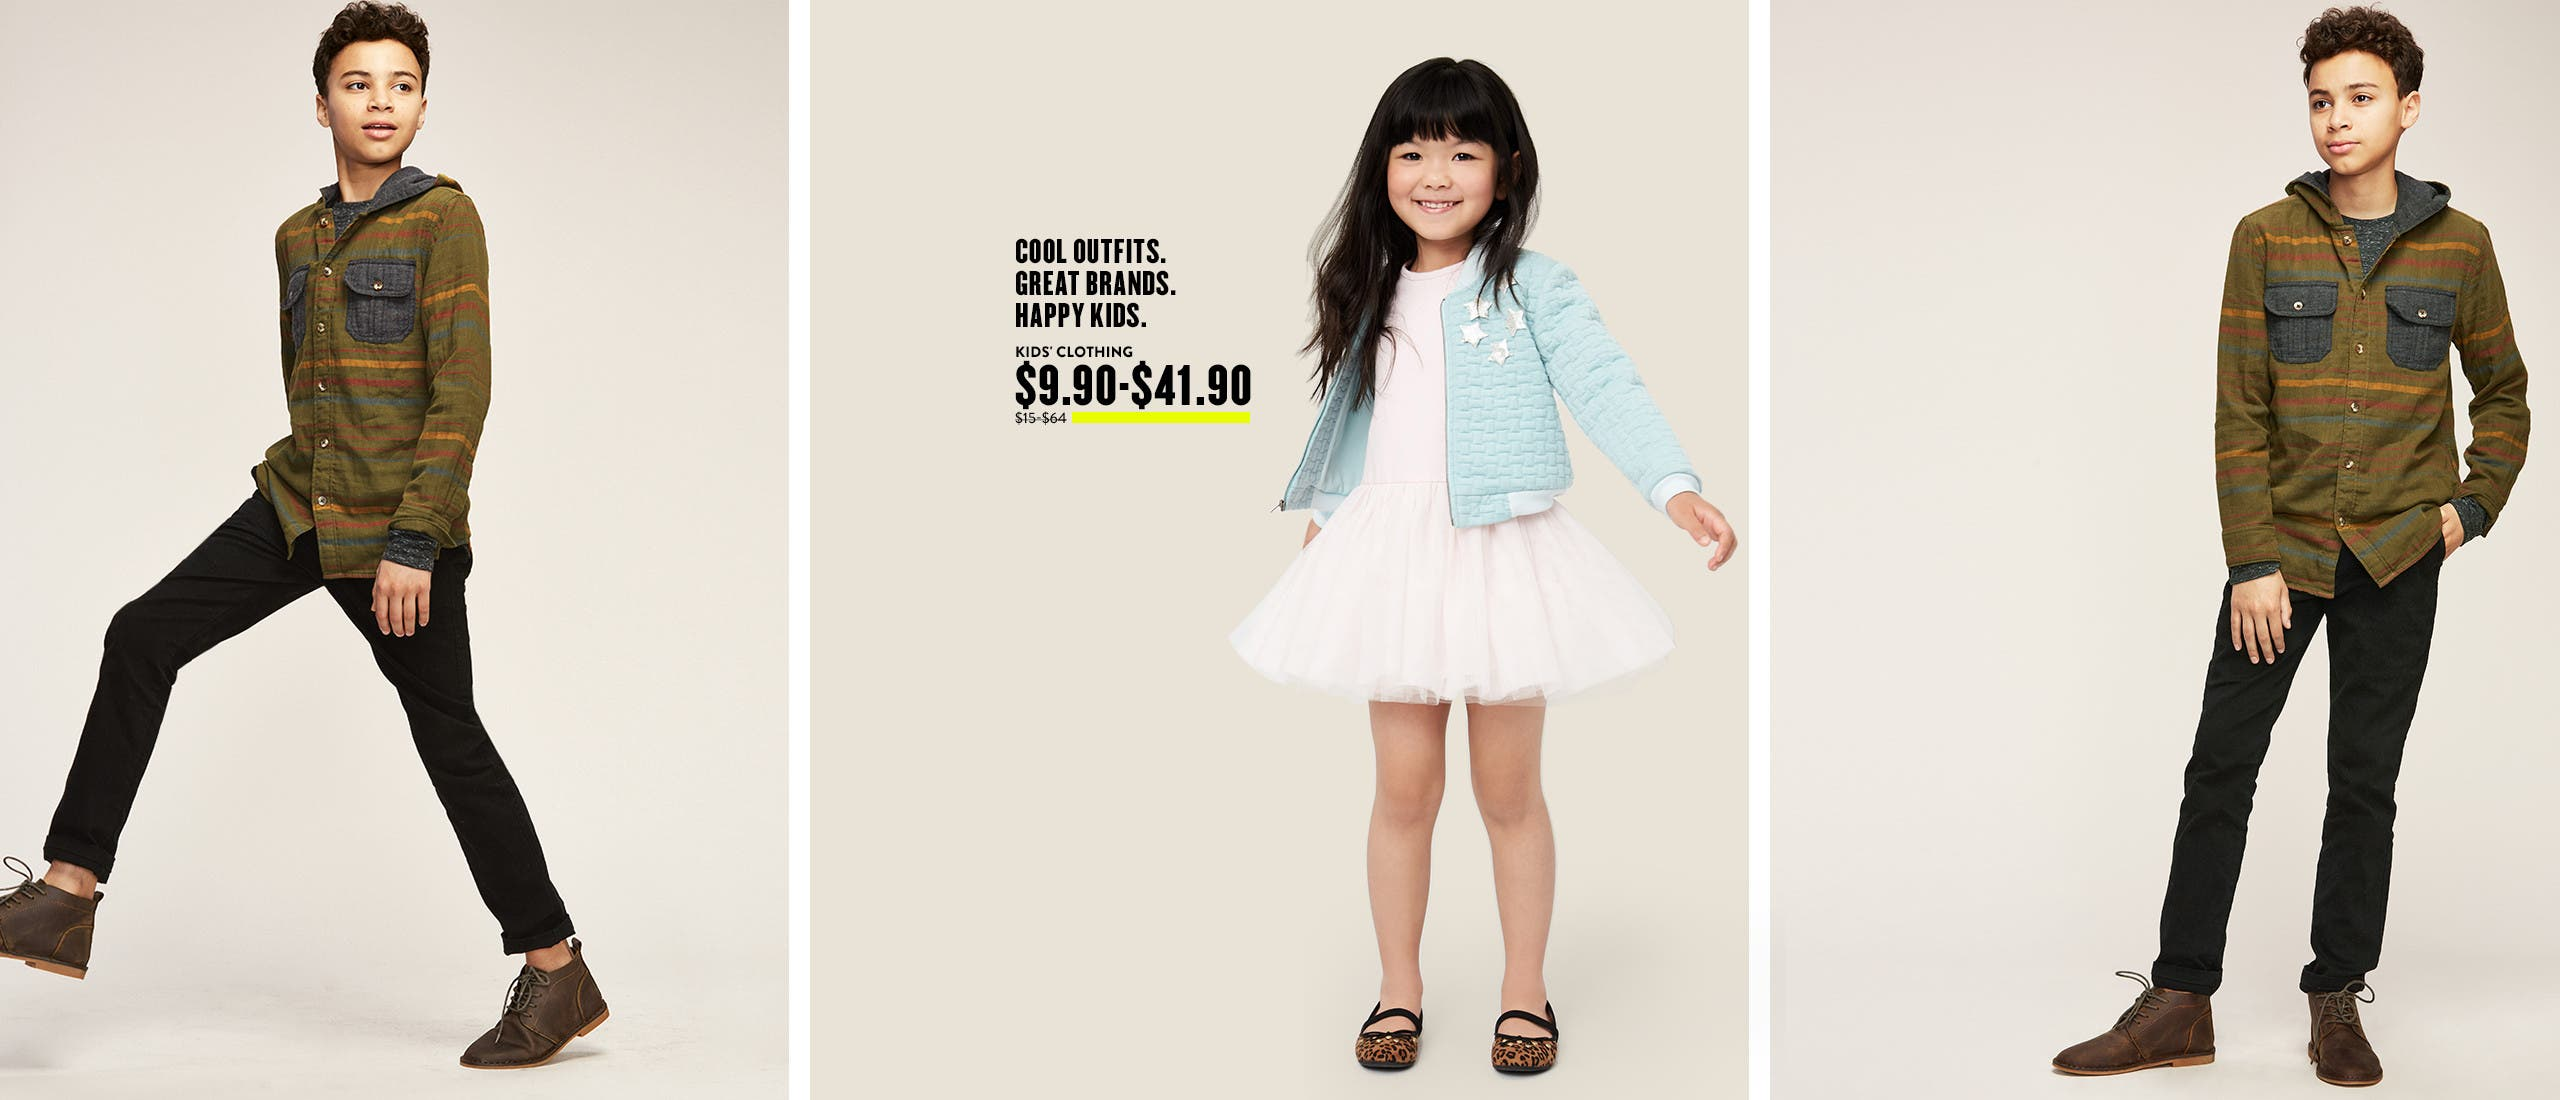 Cool outfits, happy kids. Girls' clothes at Anniversary Sale.